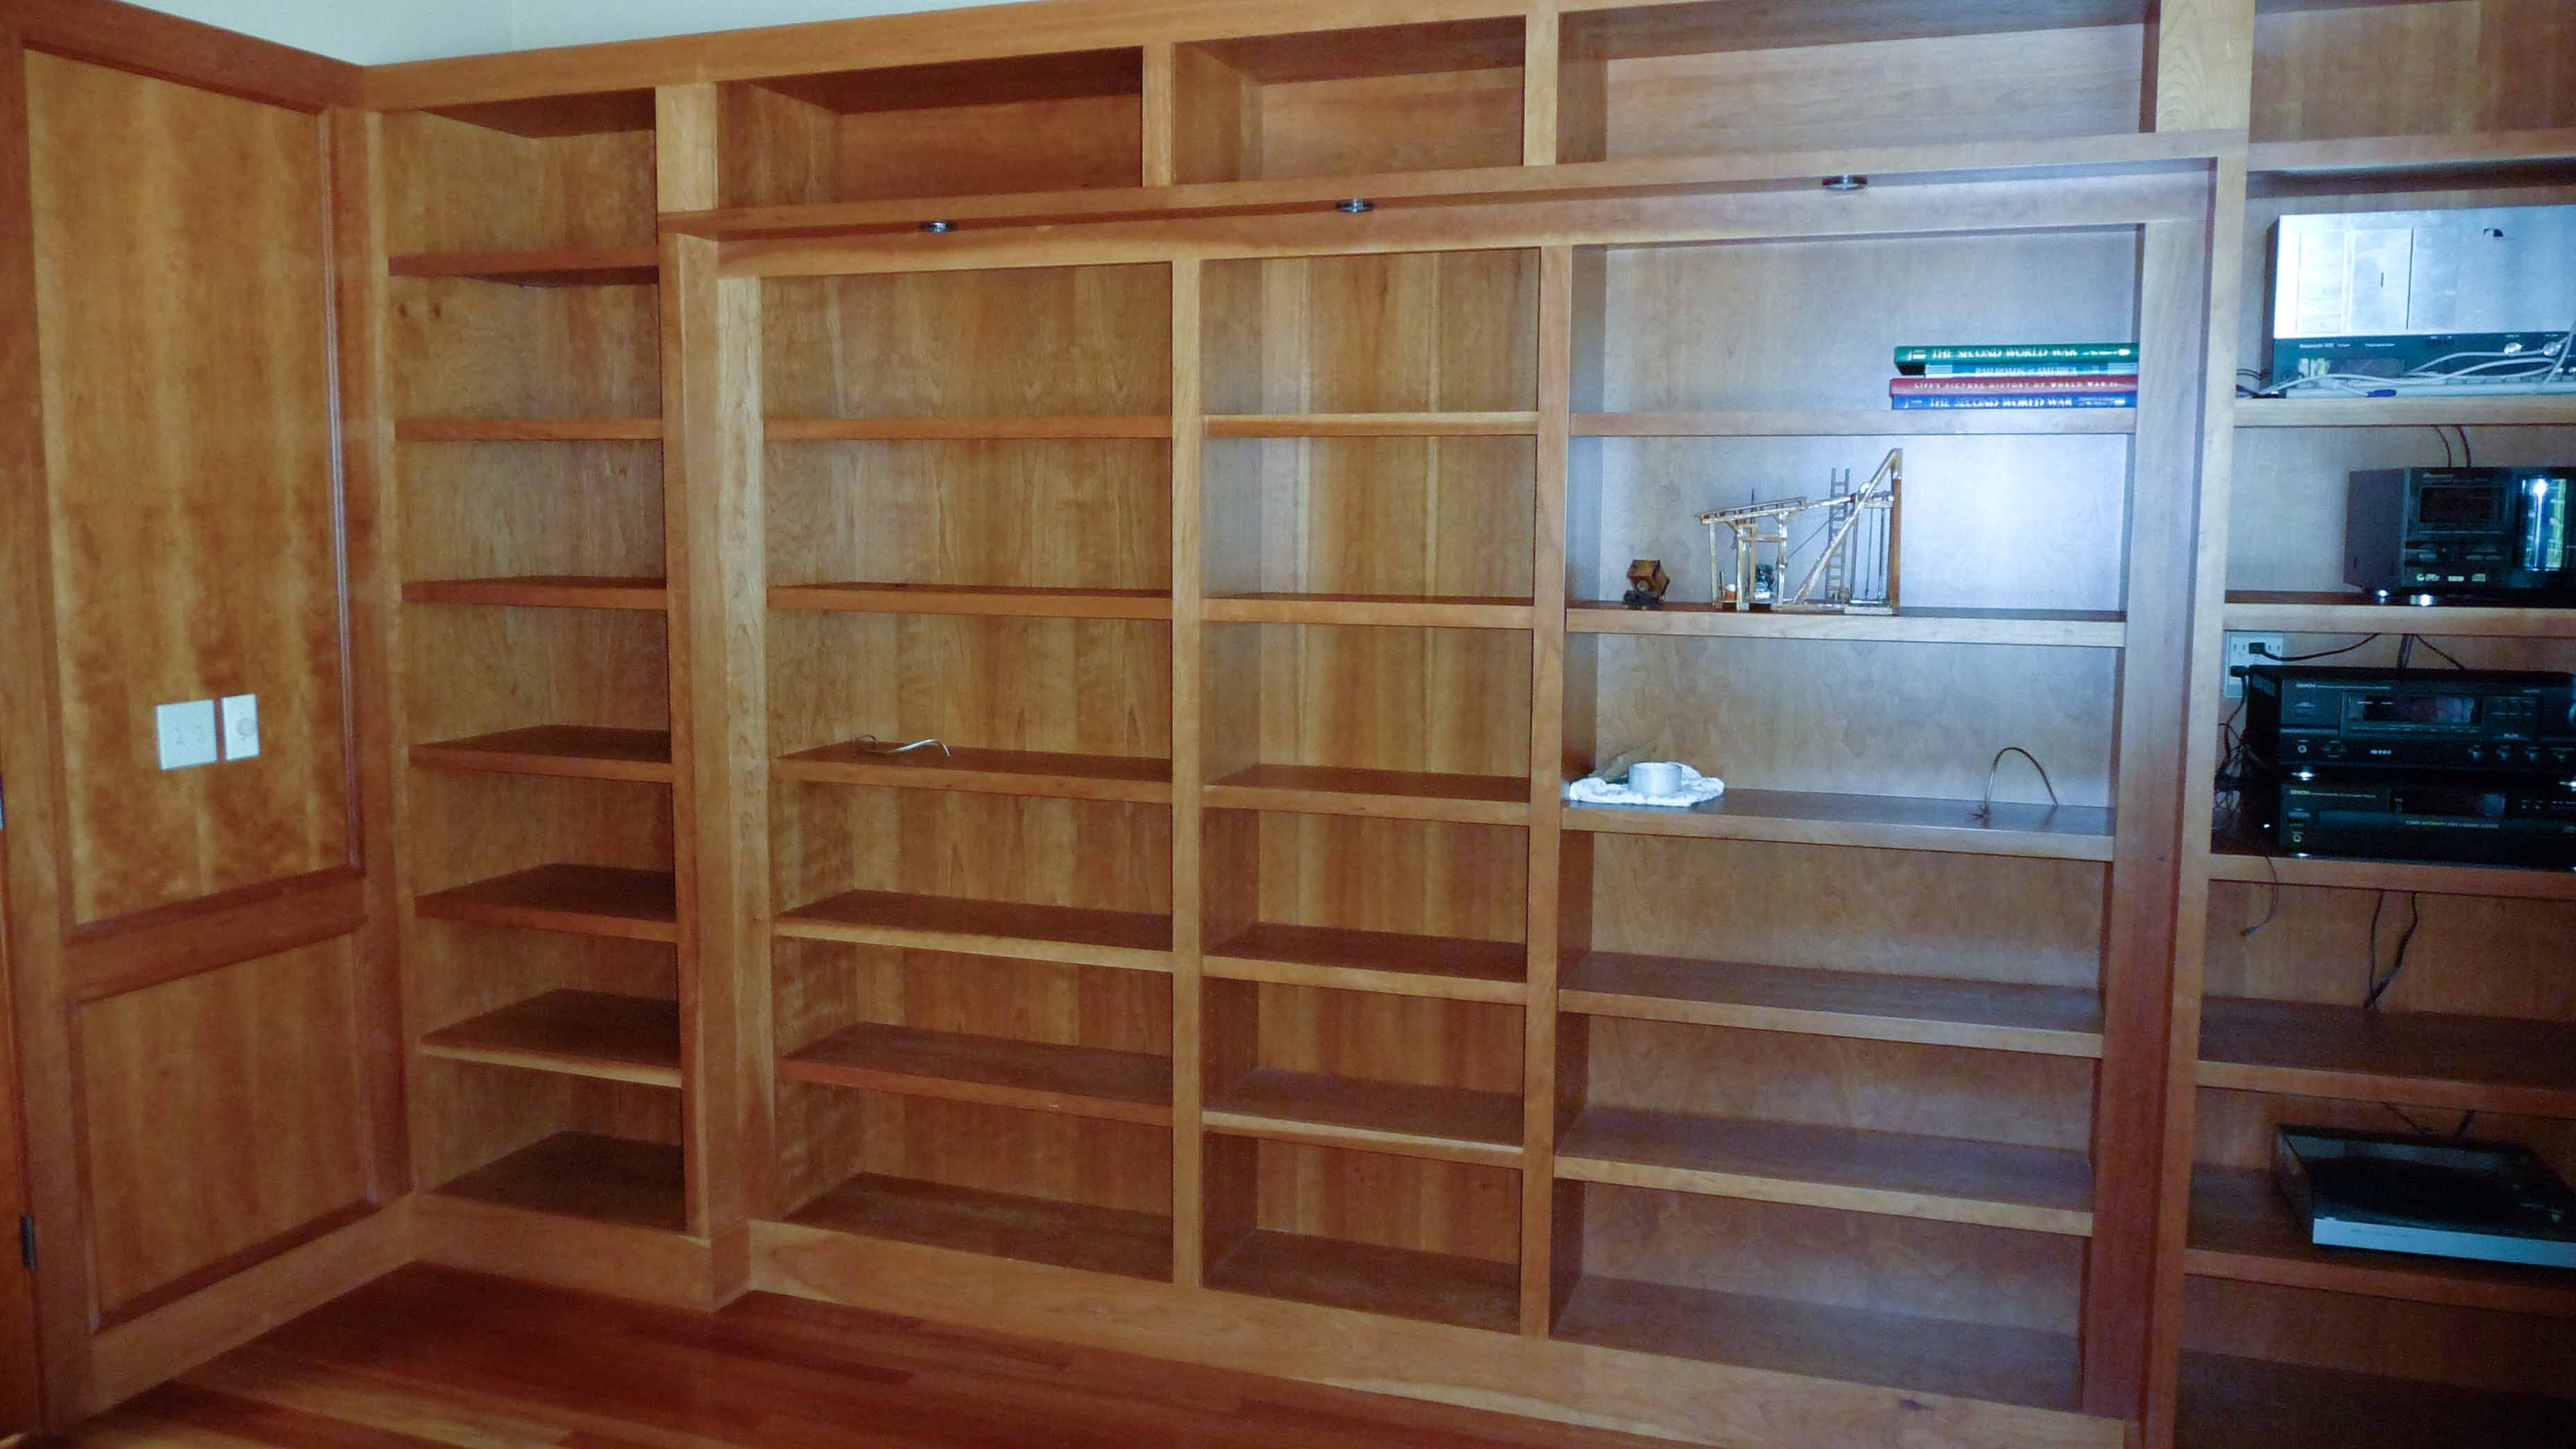 Hidden Pivot Bookcase Installation Thisiscarpentry Within Built In Bookcase Kits (#9 of 15)